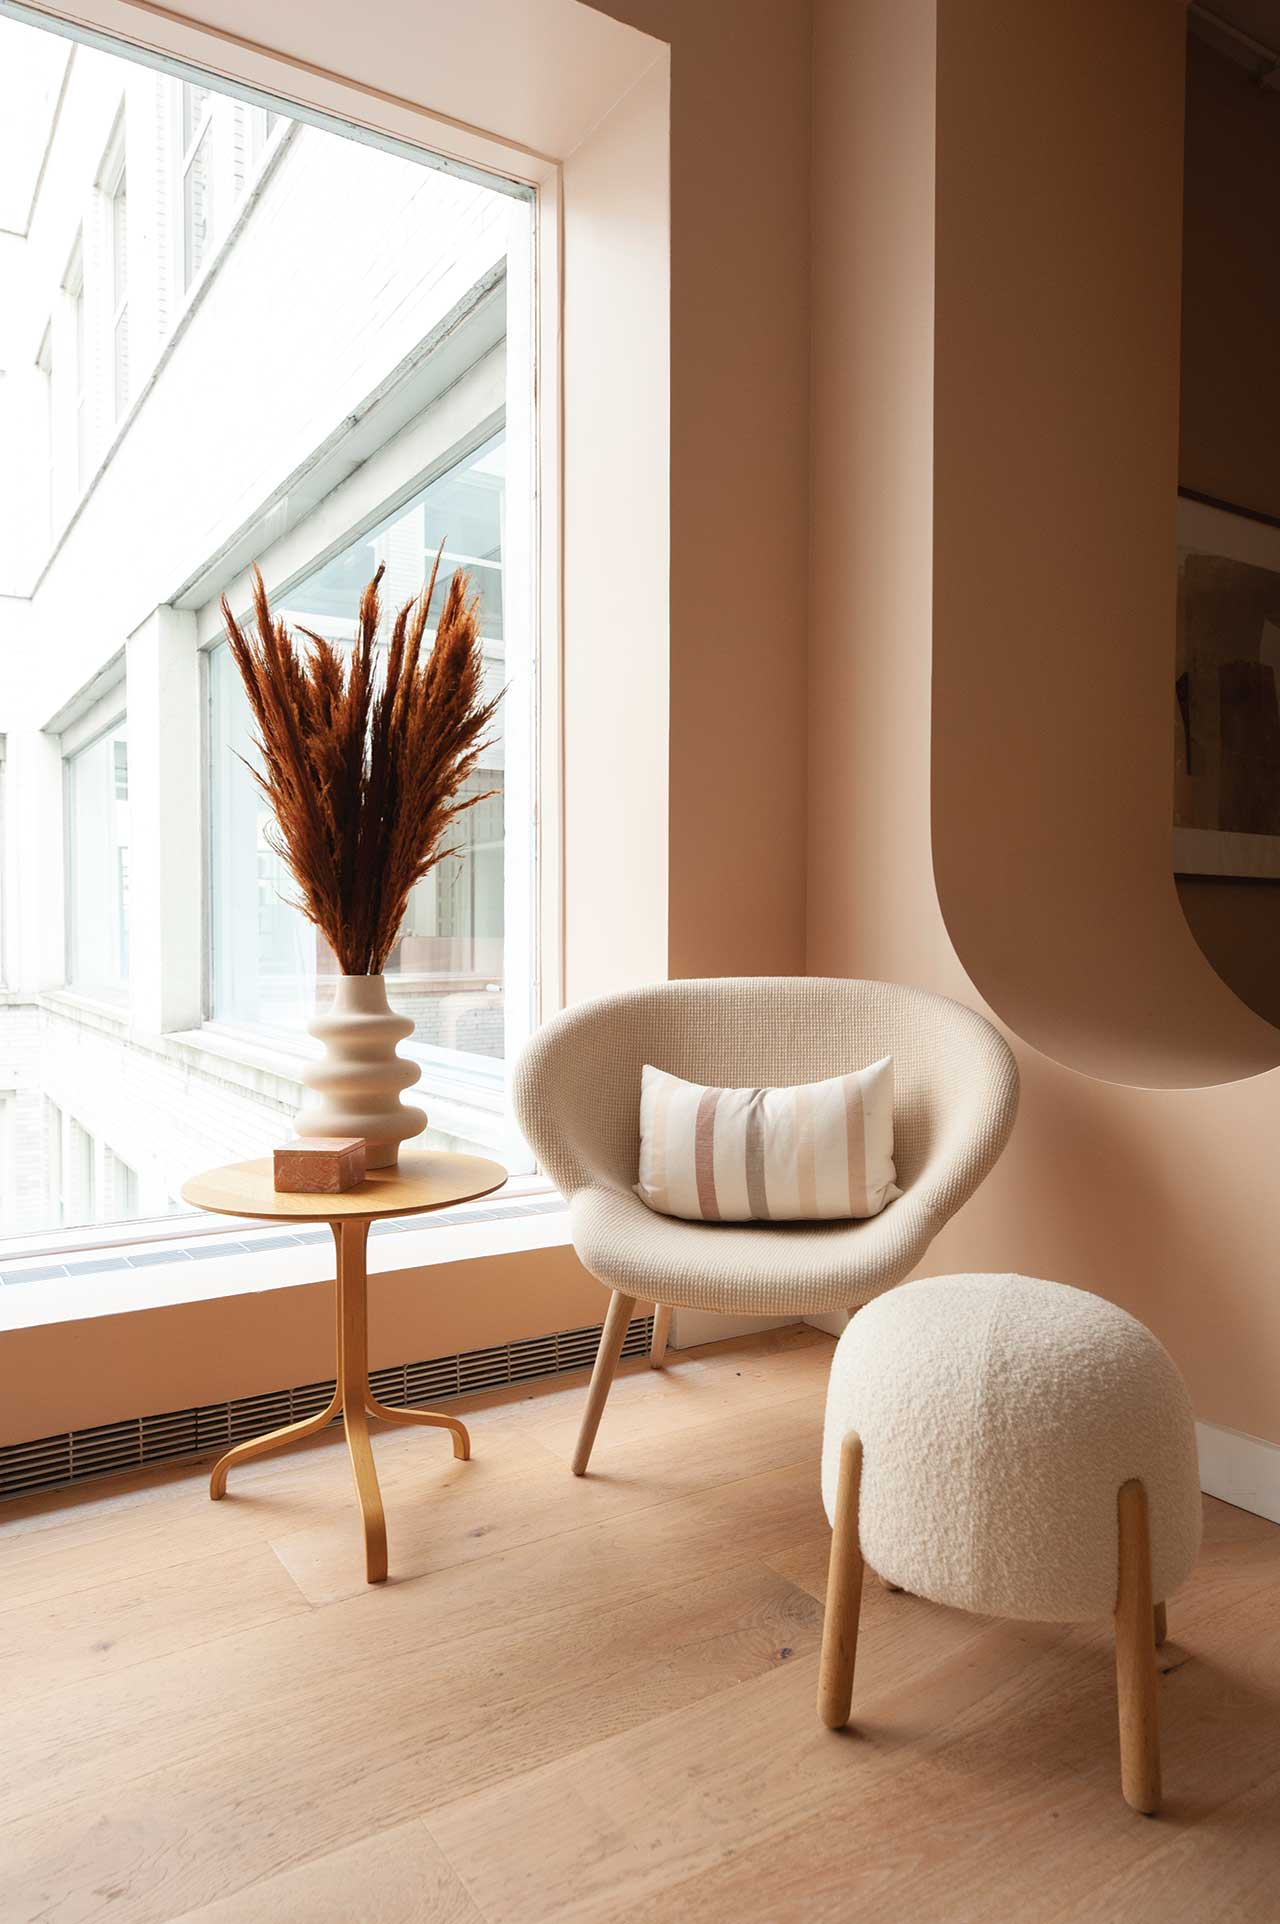 seating nook with cream colored chair and footstool